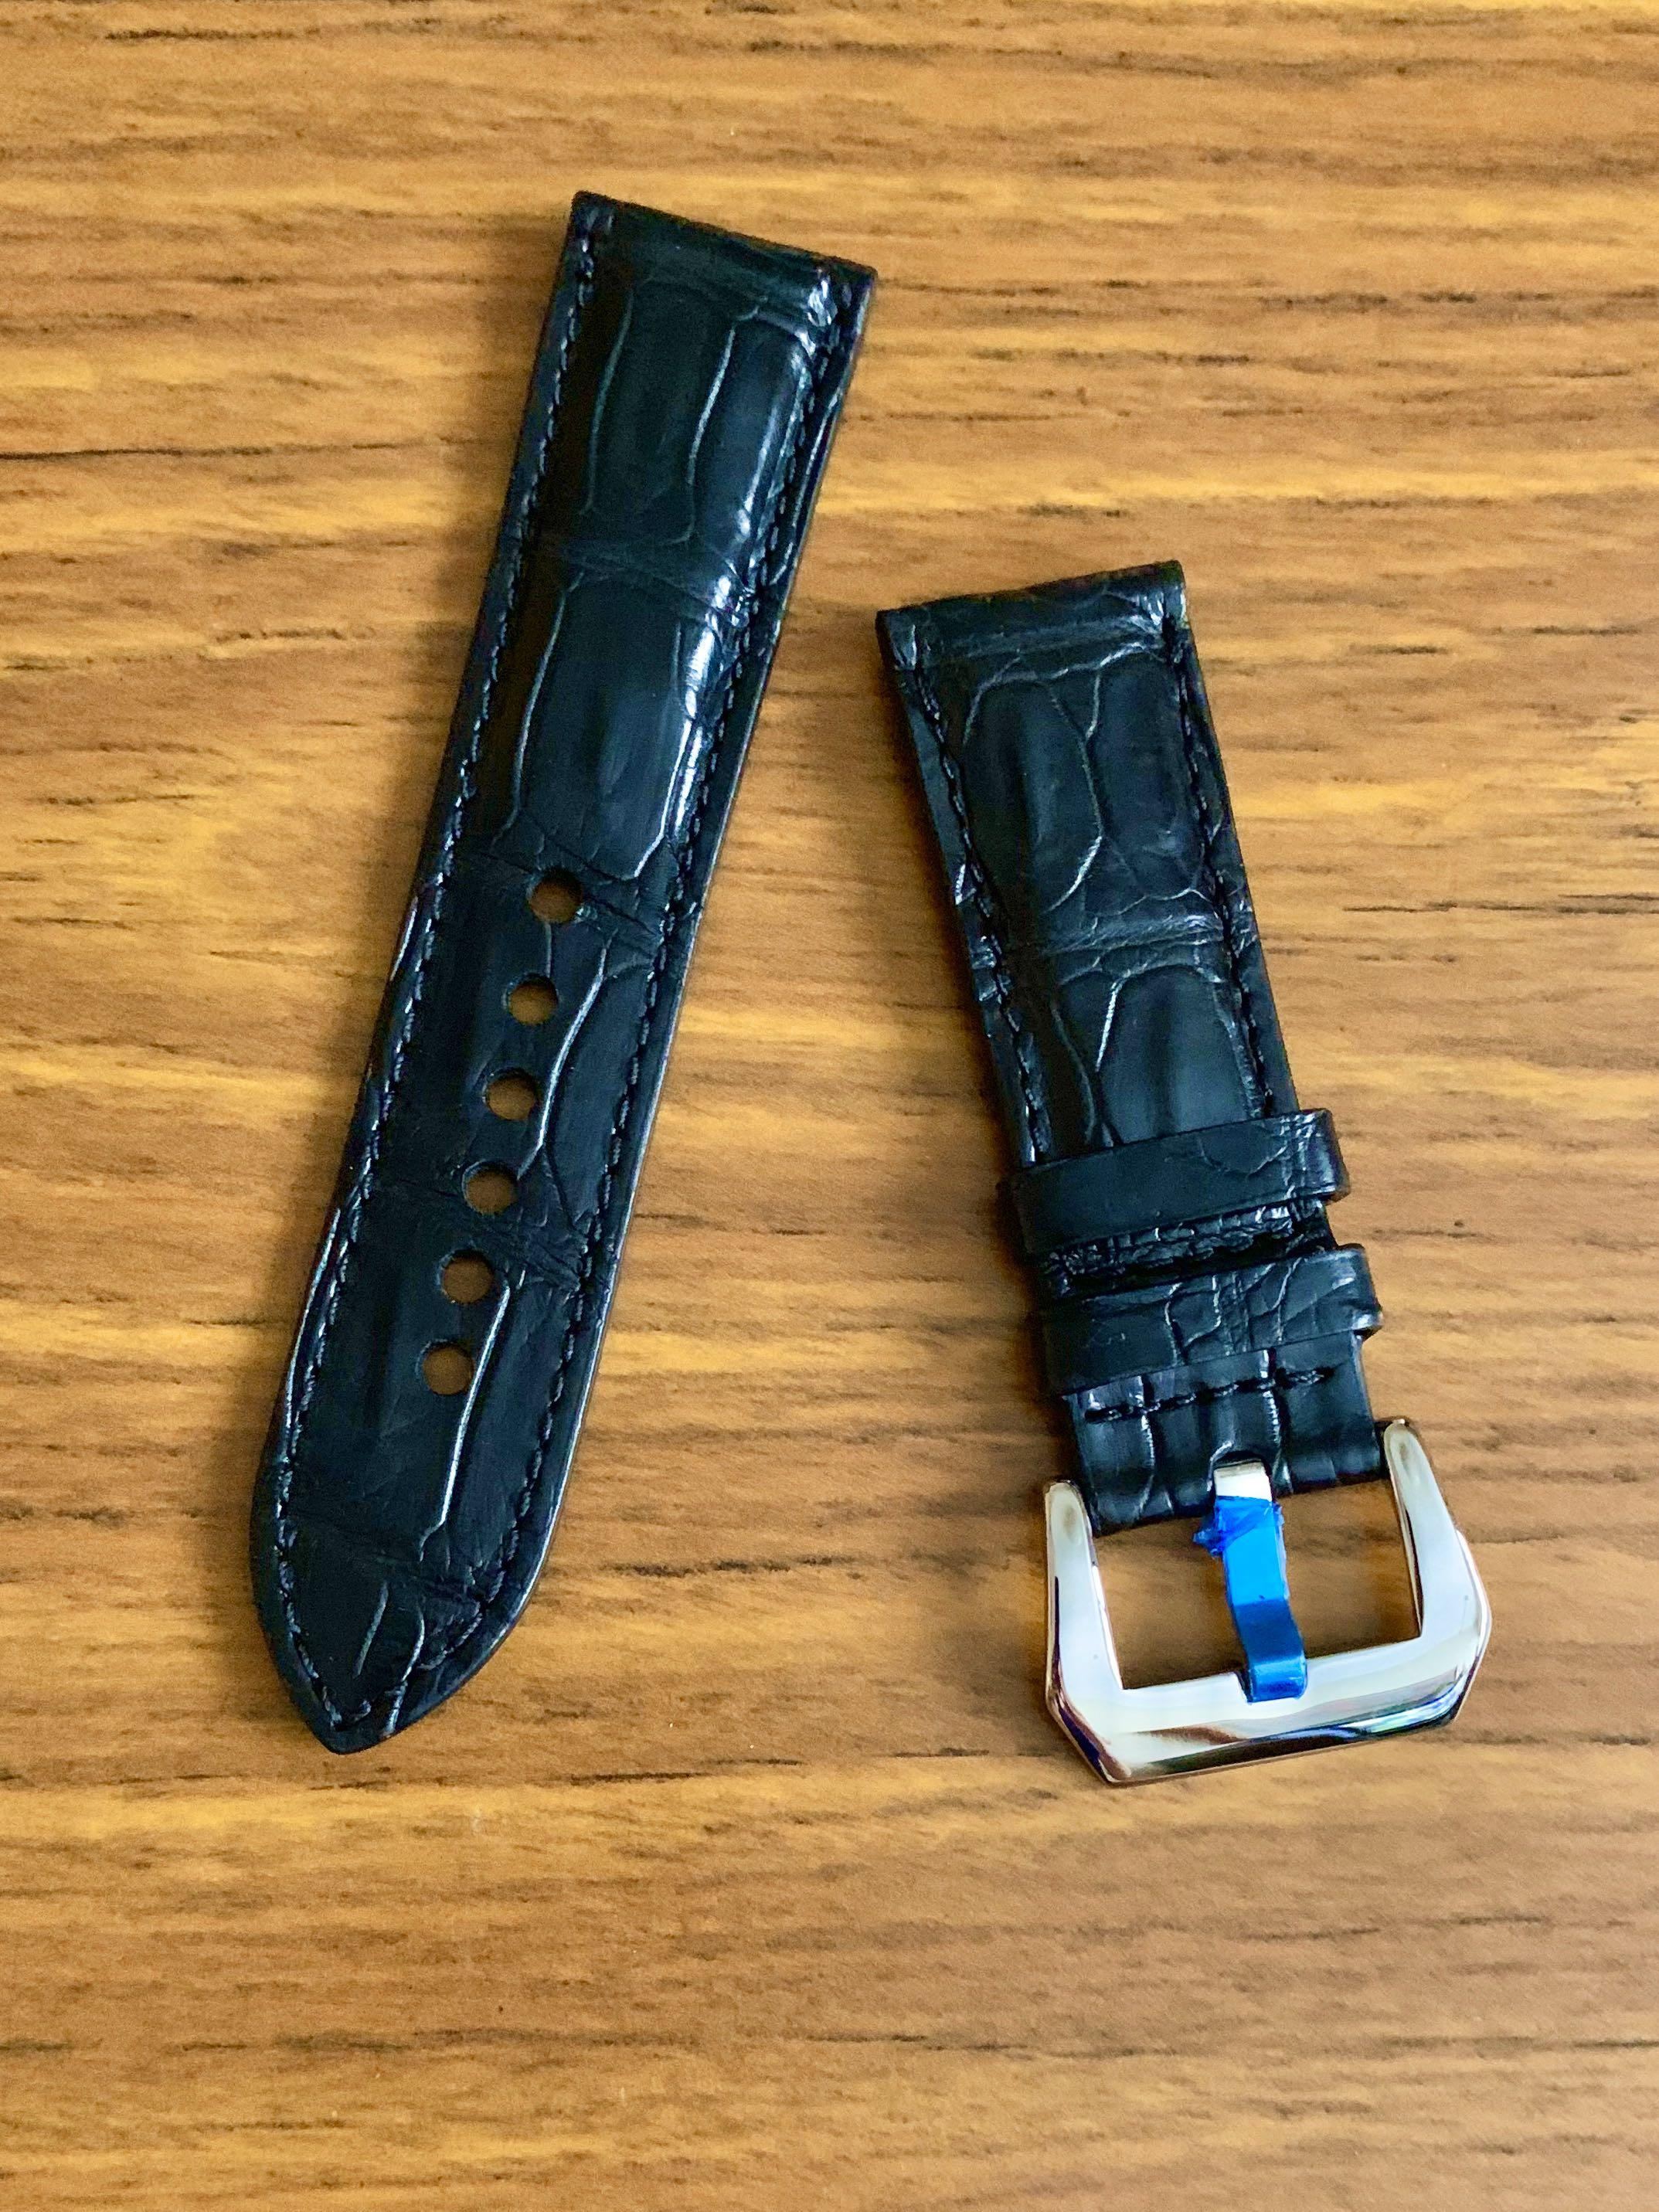 [AVAILABLE] 24mm/22mm Authentic Ebony Black Alligator 🐊 Crocodile Leather Watch Strap - (special rugged scales L-120mm, S-75mm) IF RESERVED, PLS SCREENSHOT THIS ITEM AND TEXT US THRU AN ACTIVE LISTING TO BUY 🤗 Tq 🙏🏻)